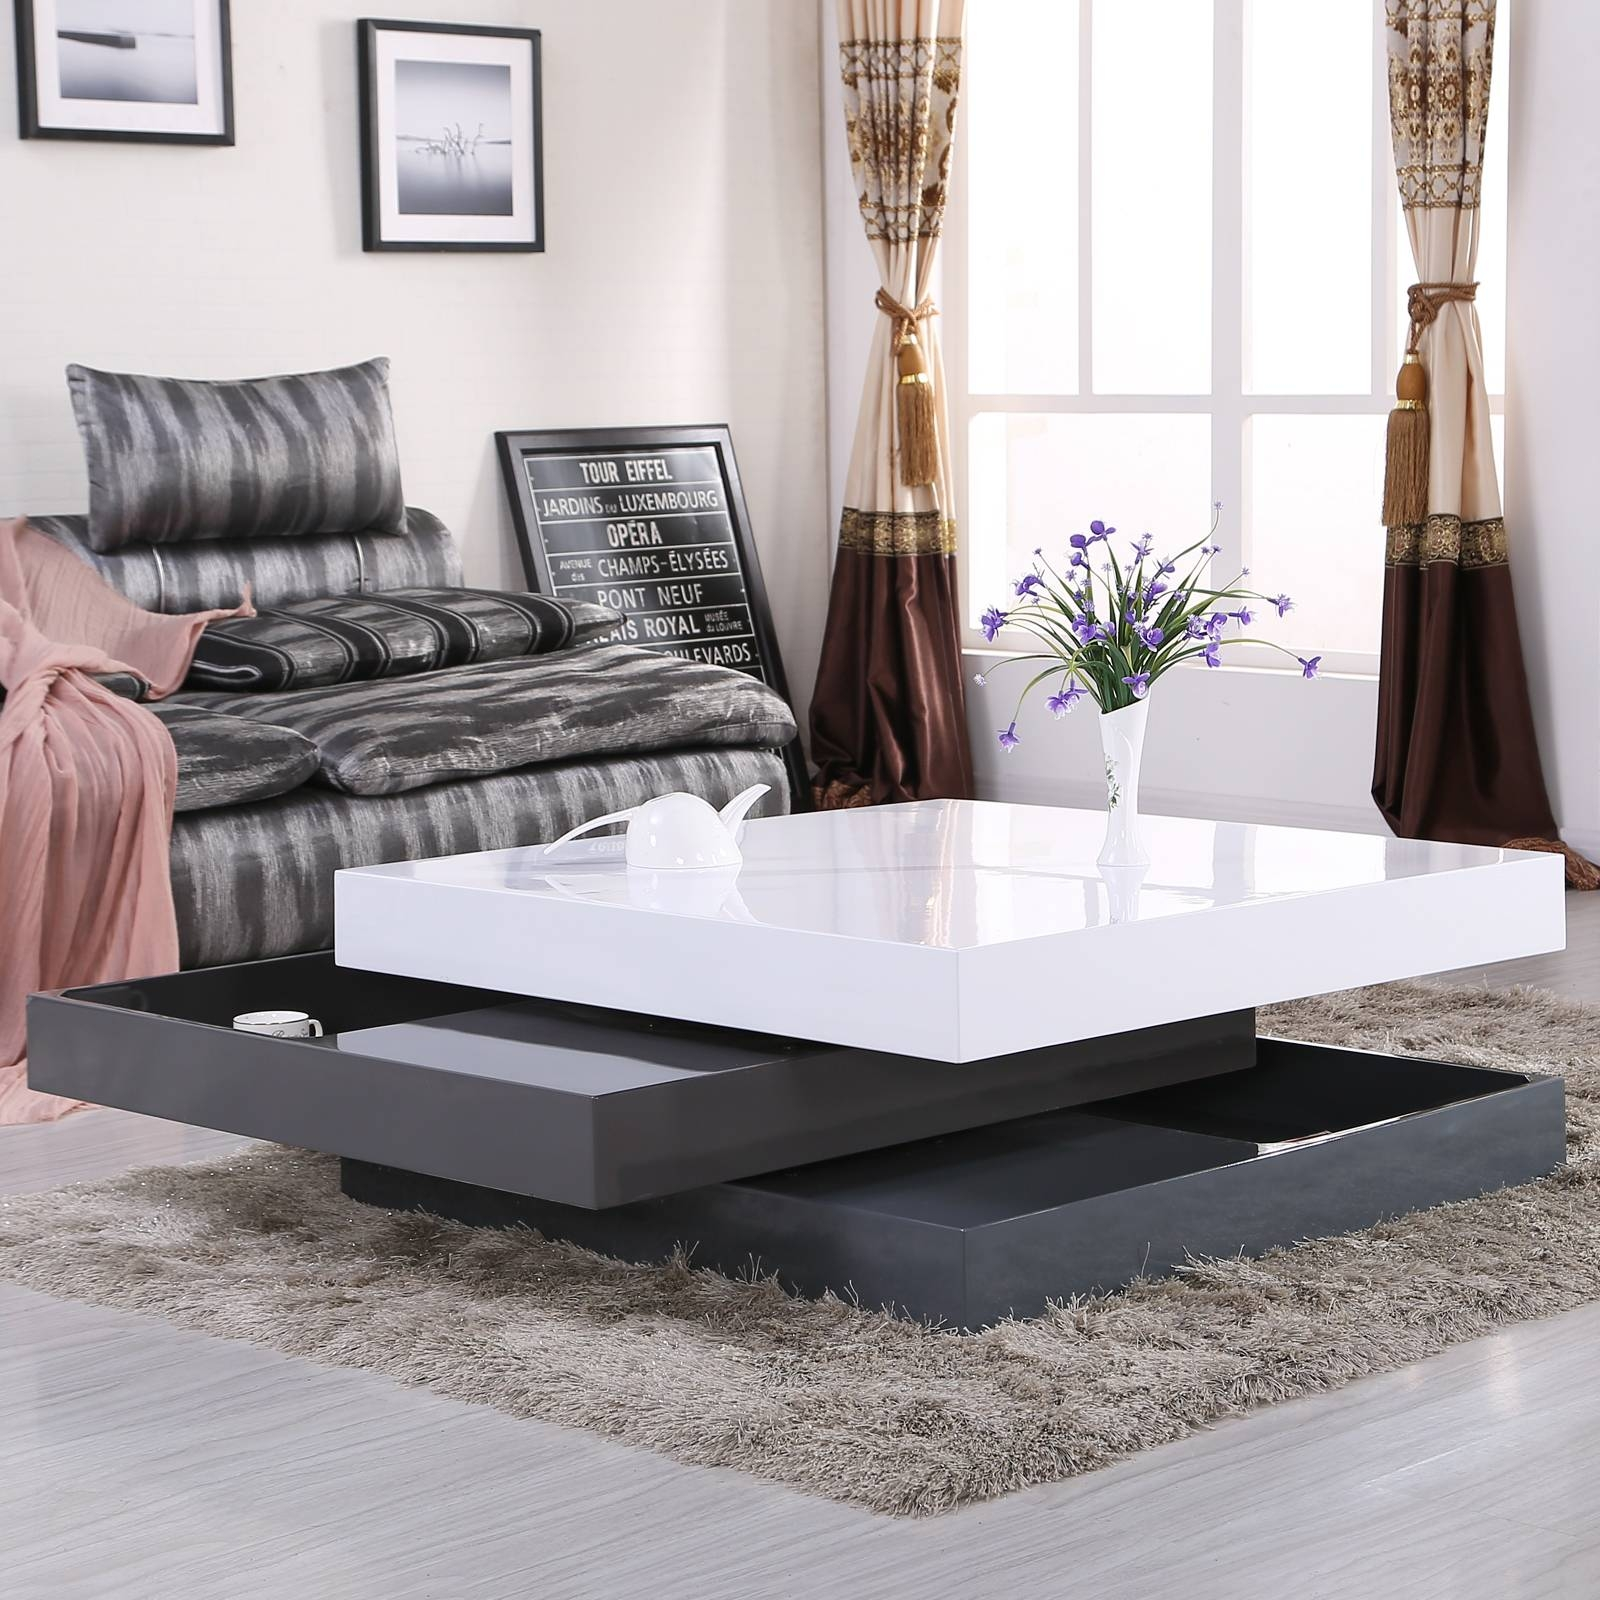 Square Coffee Table | Ebay with regard to Red Gloss Coffee Tables (Image 26 of 30)